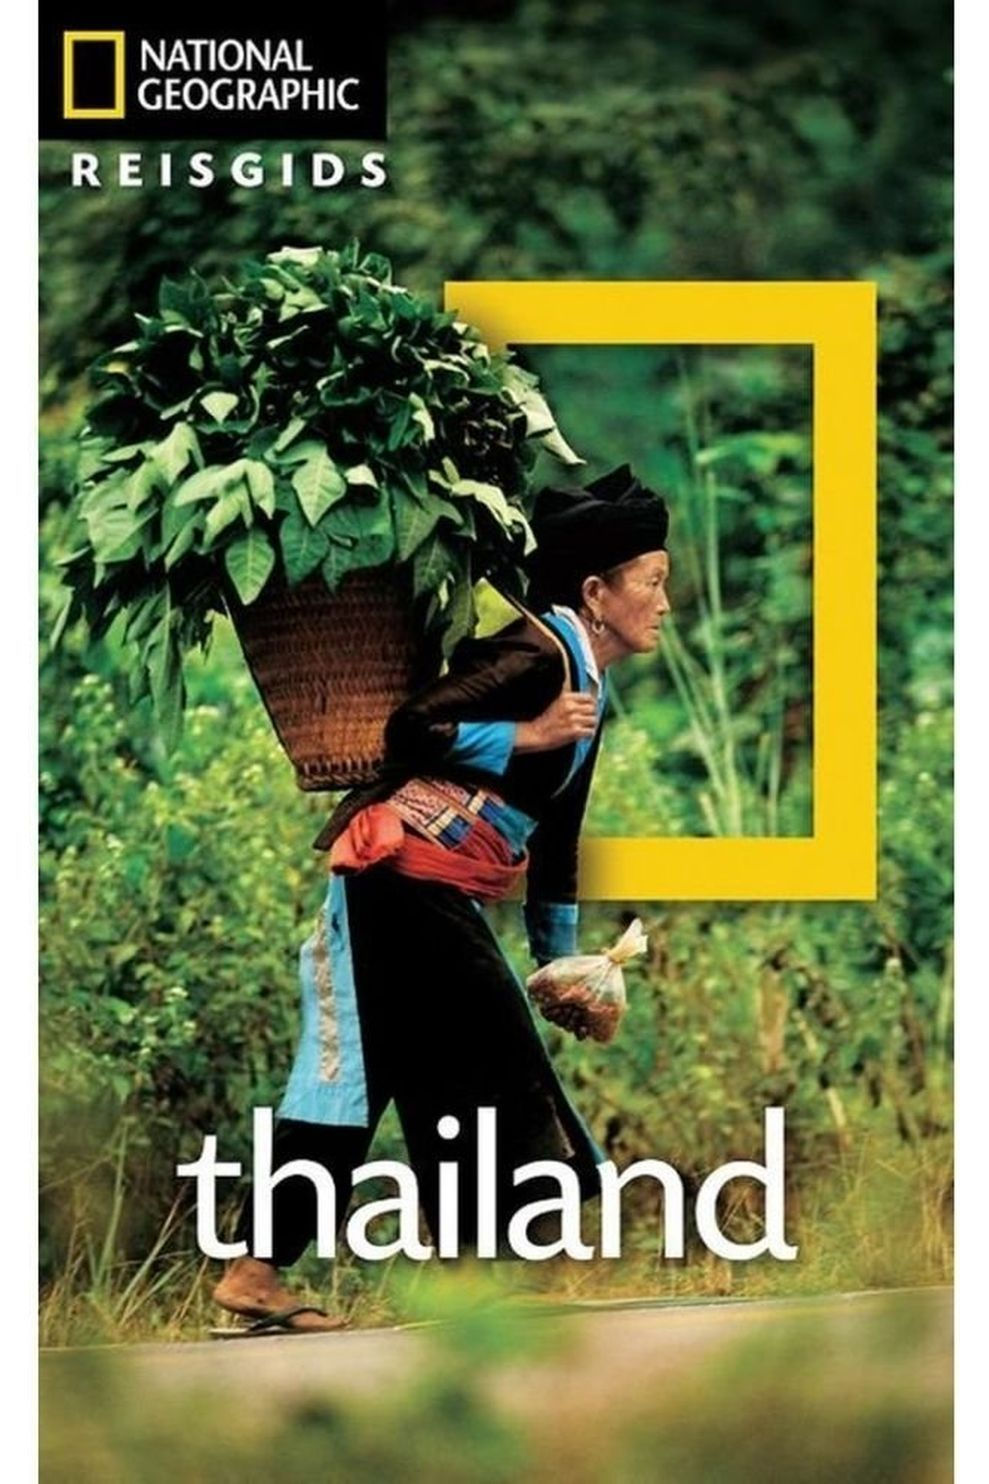 National Geographic Thailand-Reisgids-Nat.-Geographic-N04/2018 - 2019